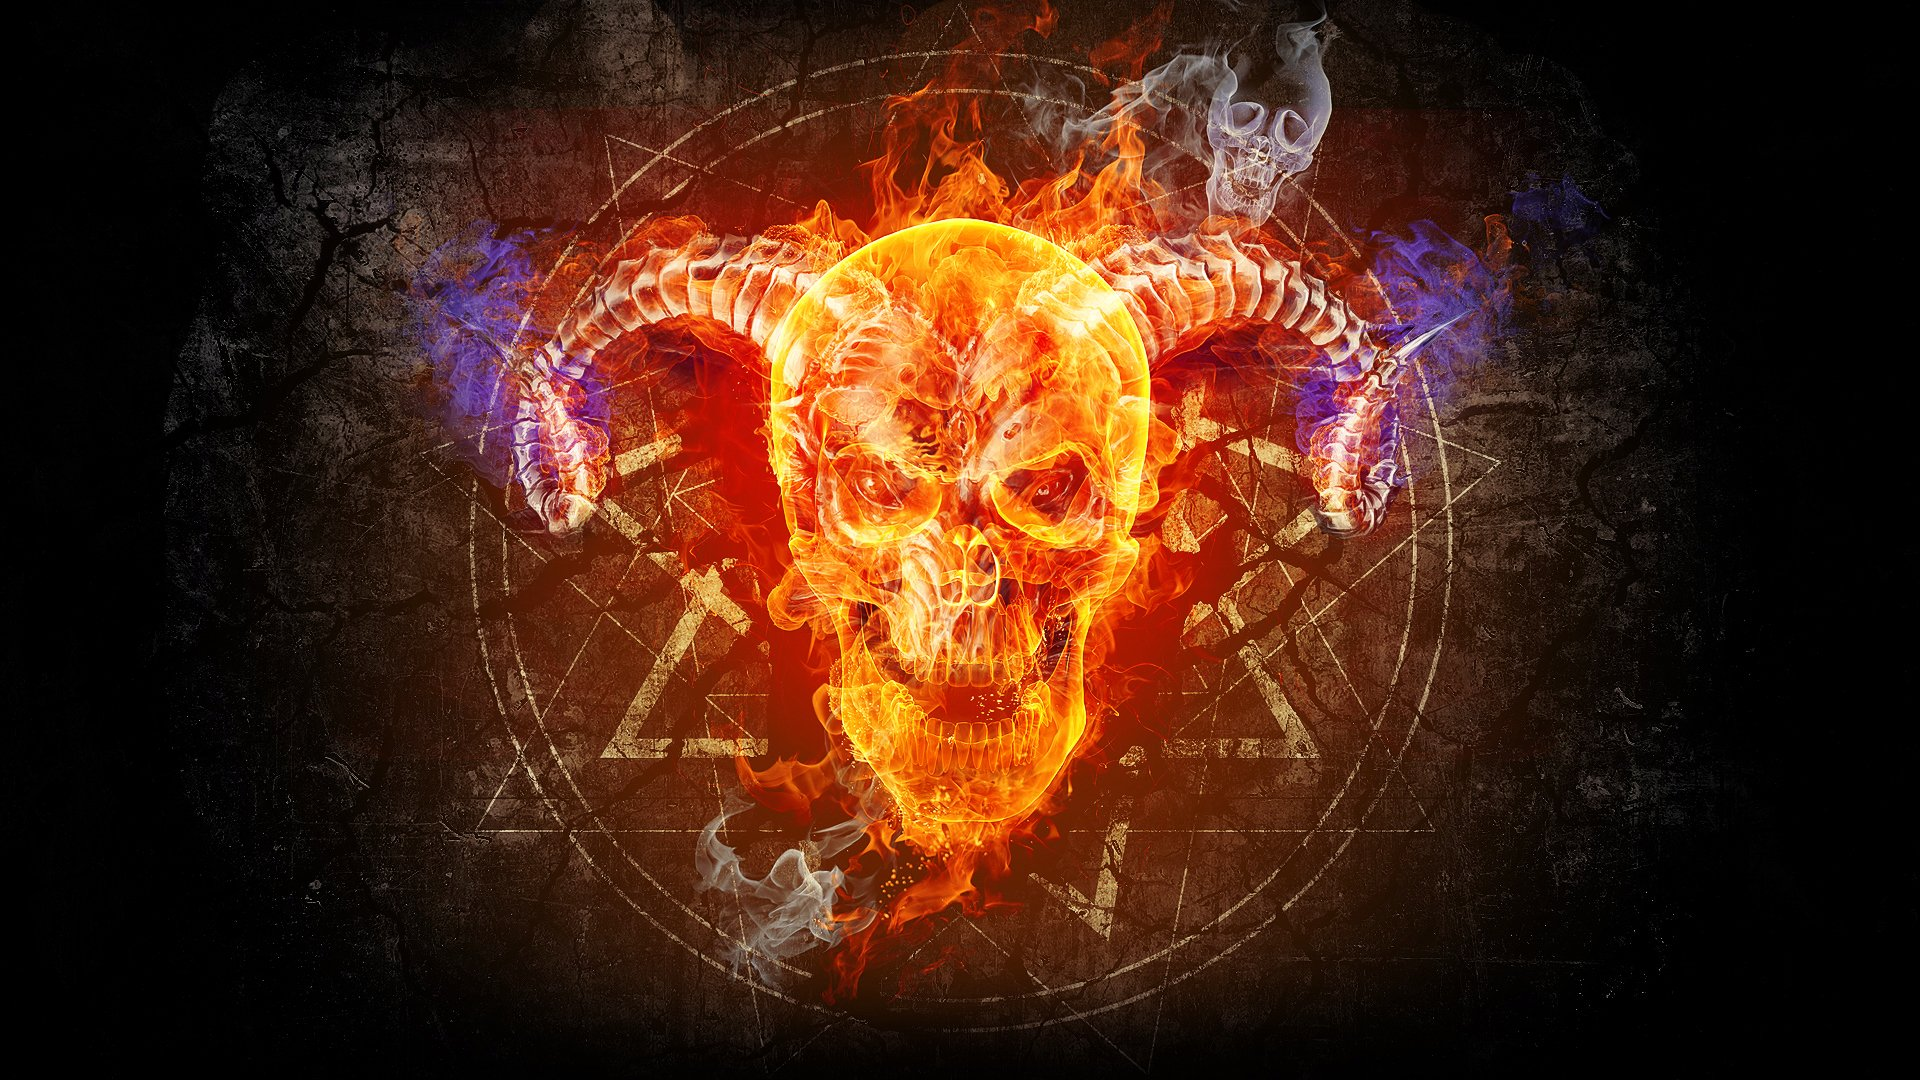 Baphomet Wallpapers - Android Apps on Google Play